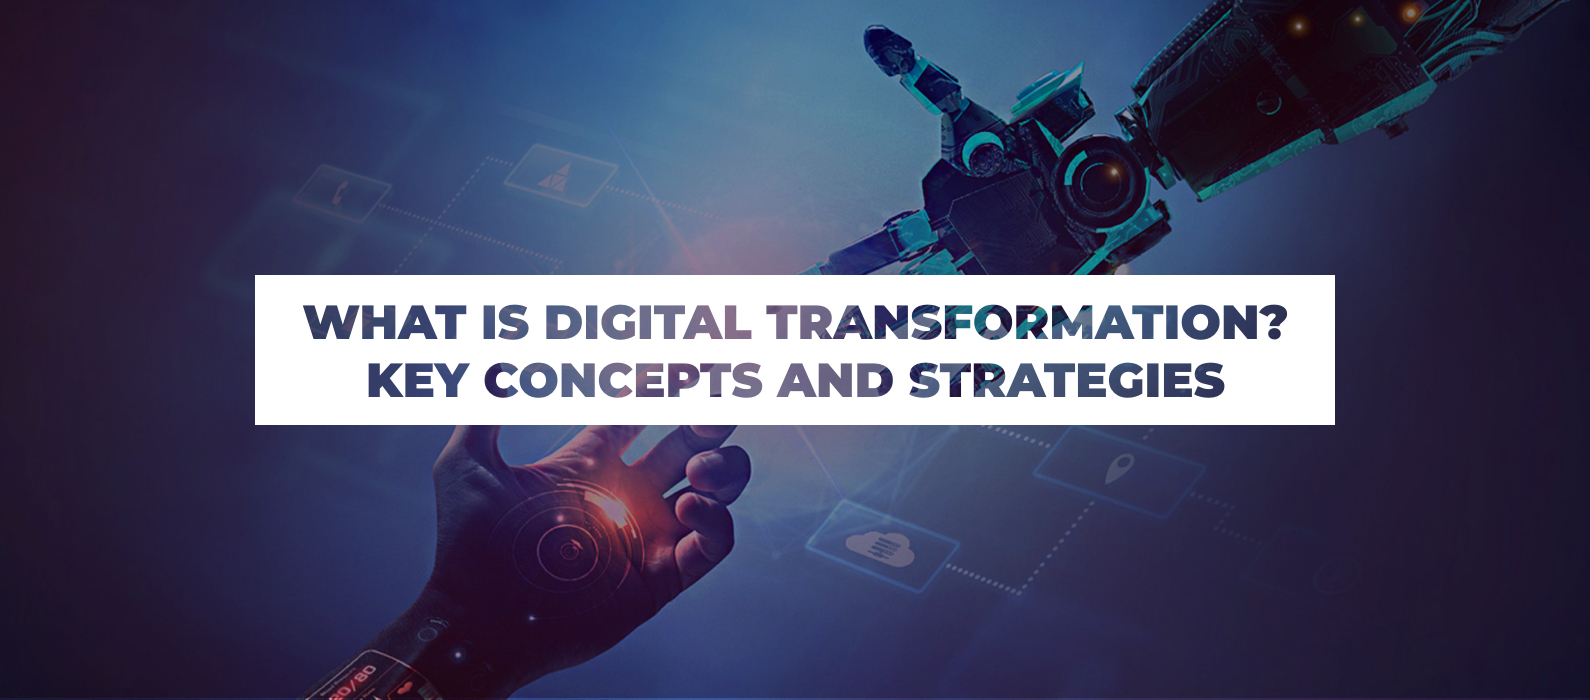 What is Digital Transformation Key Concepts and Strategies